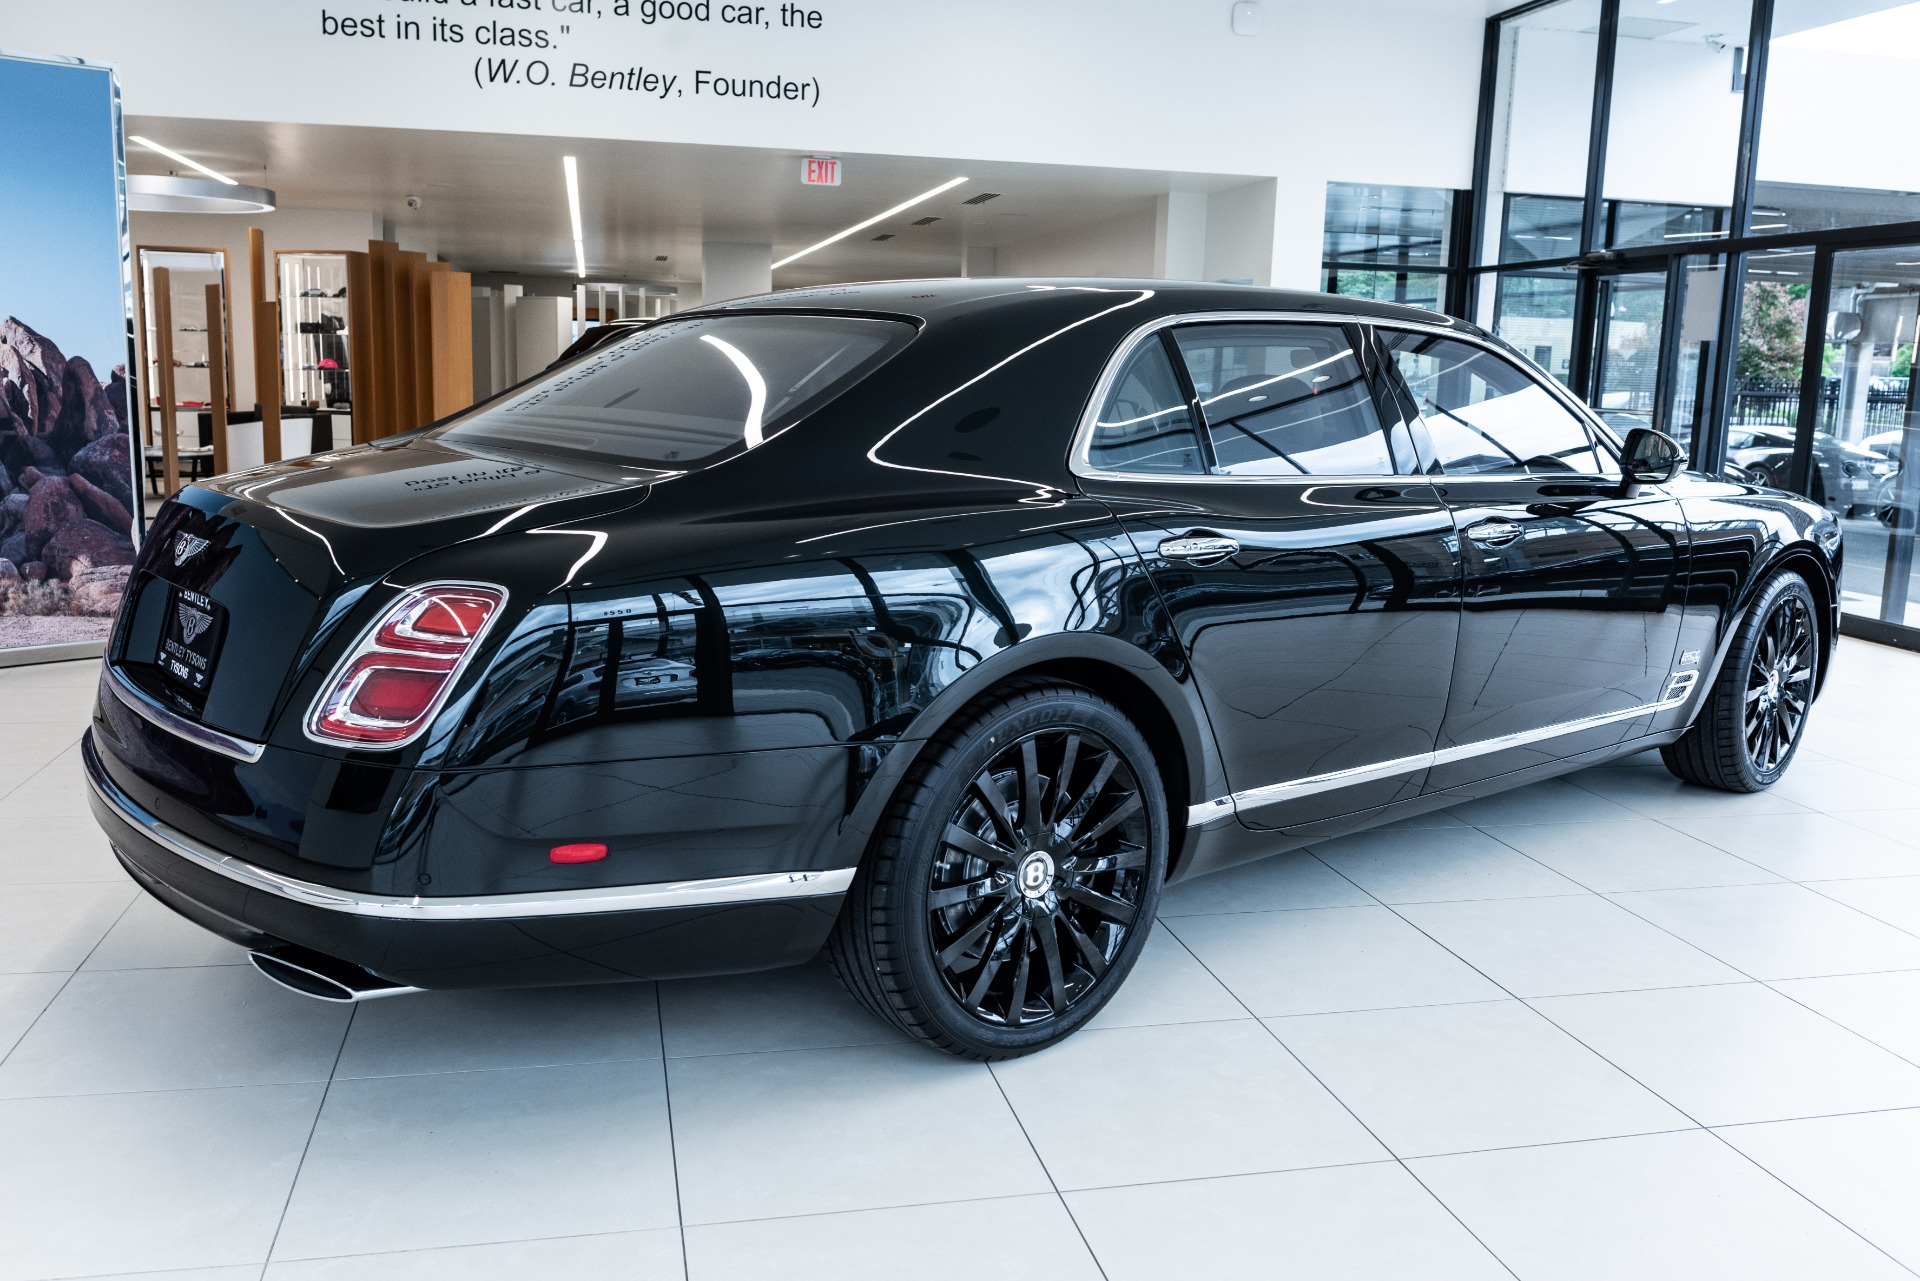 Lease A Car Near Me >> 2019 Bentley Mulsanne WO Bentley Edition Stock # 9N004407 for sale near Vienna, VA | VA Bentley ...